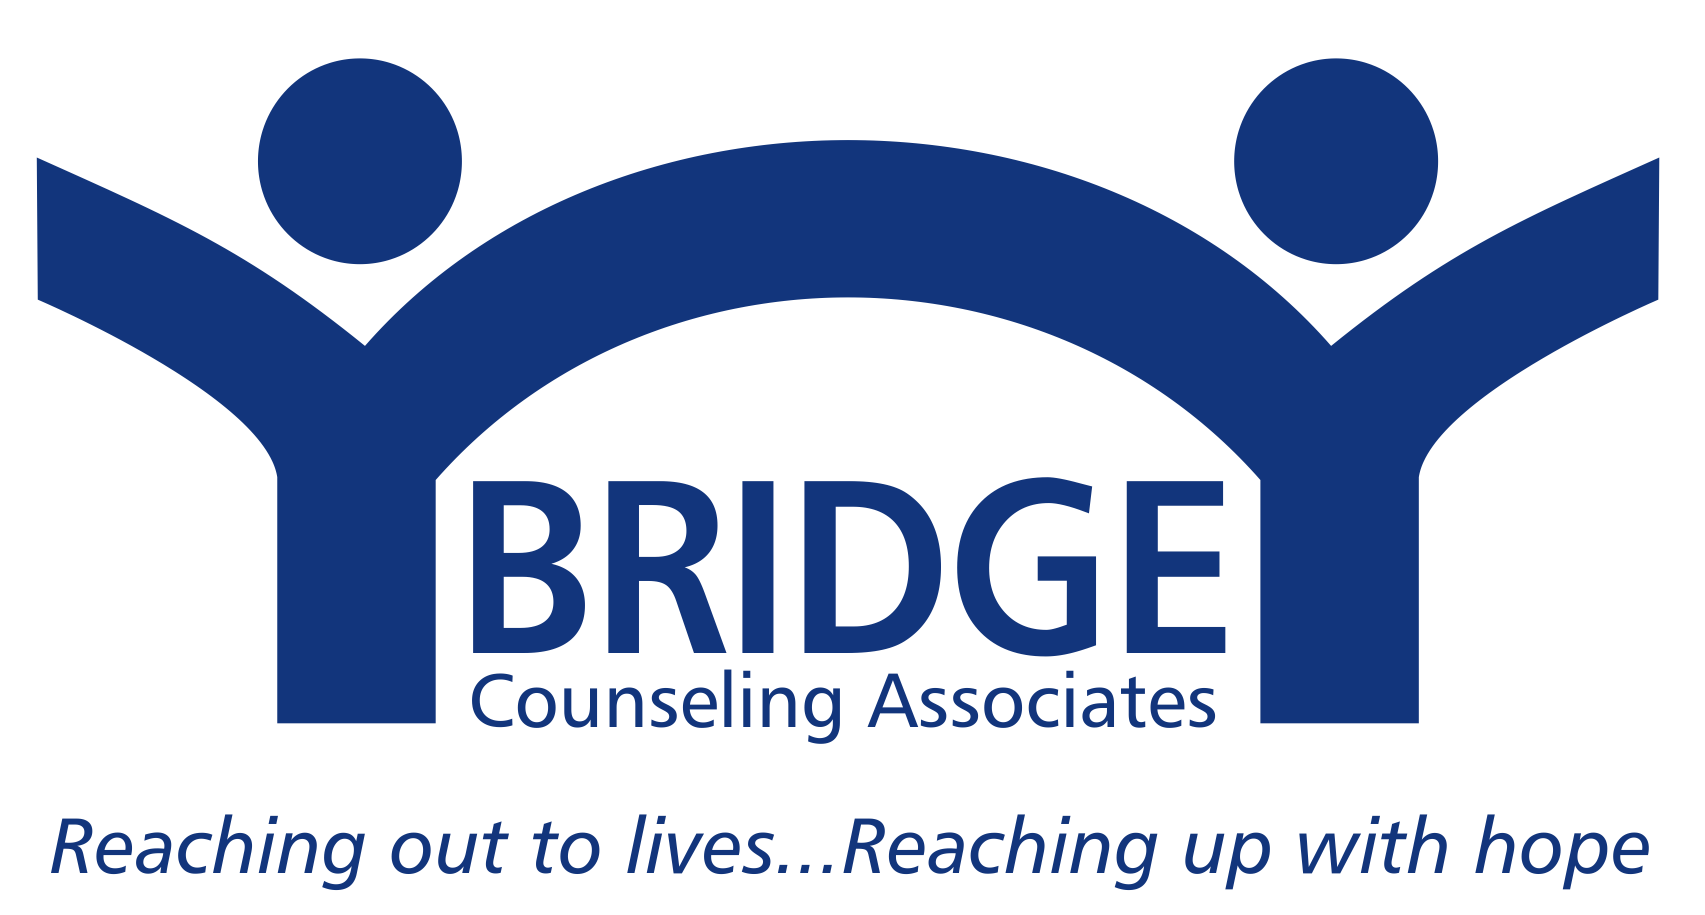 Bridge Counseling Associates Logo